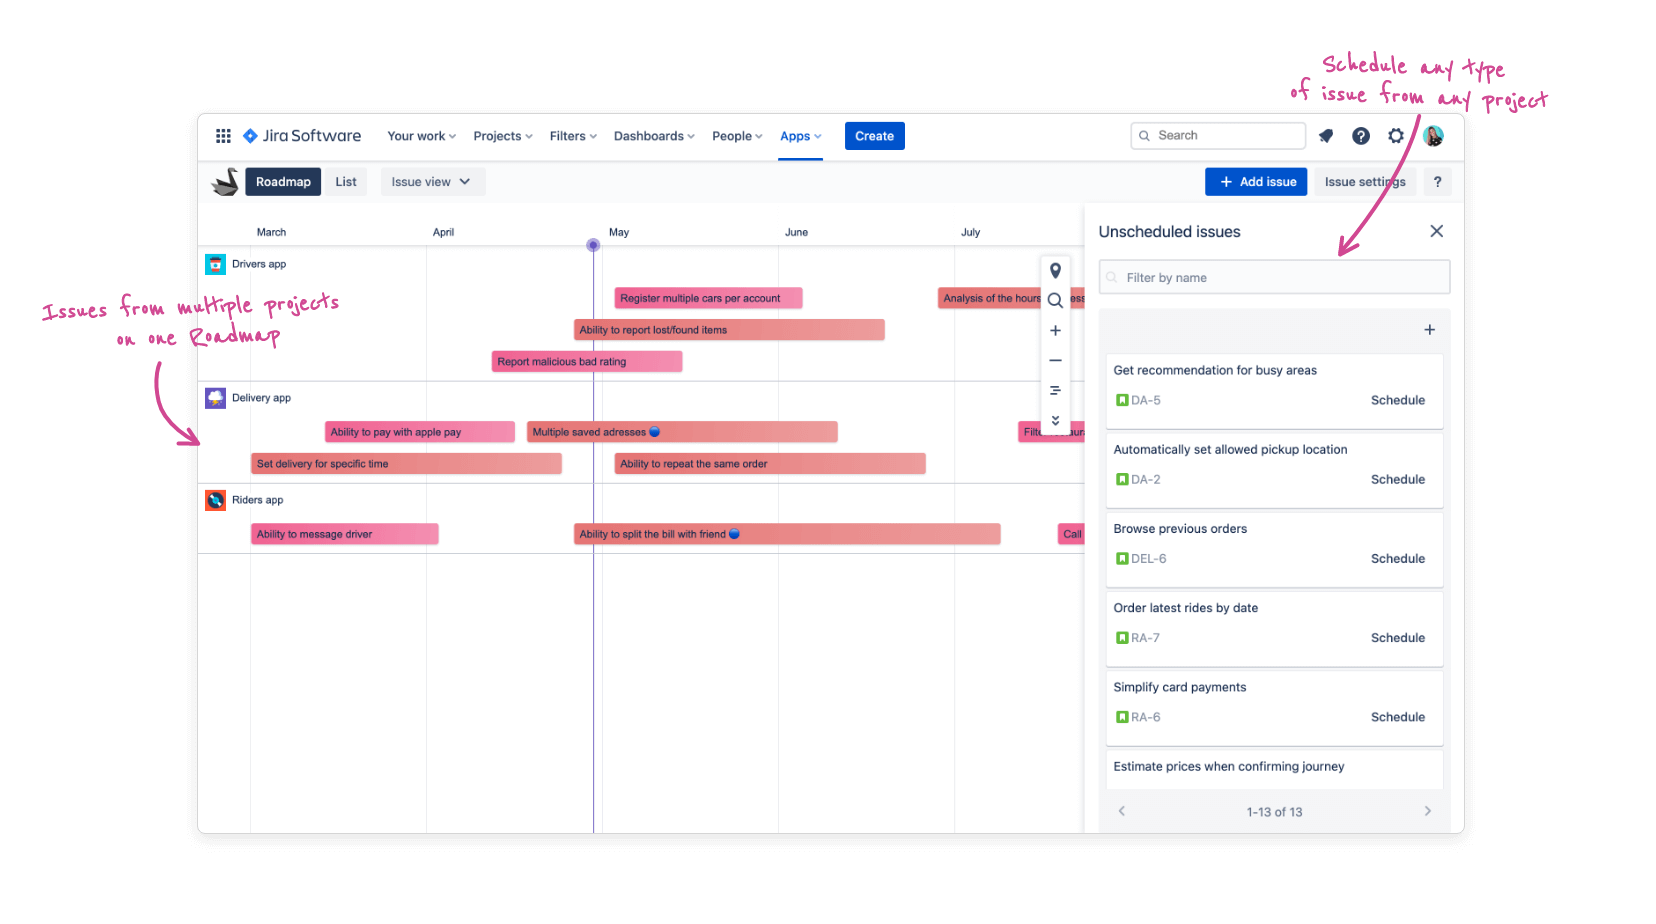 Swanly roadmap - project tracking in Jira